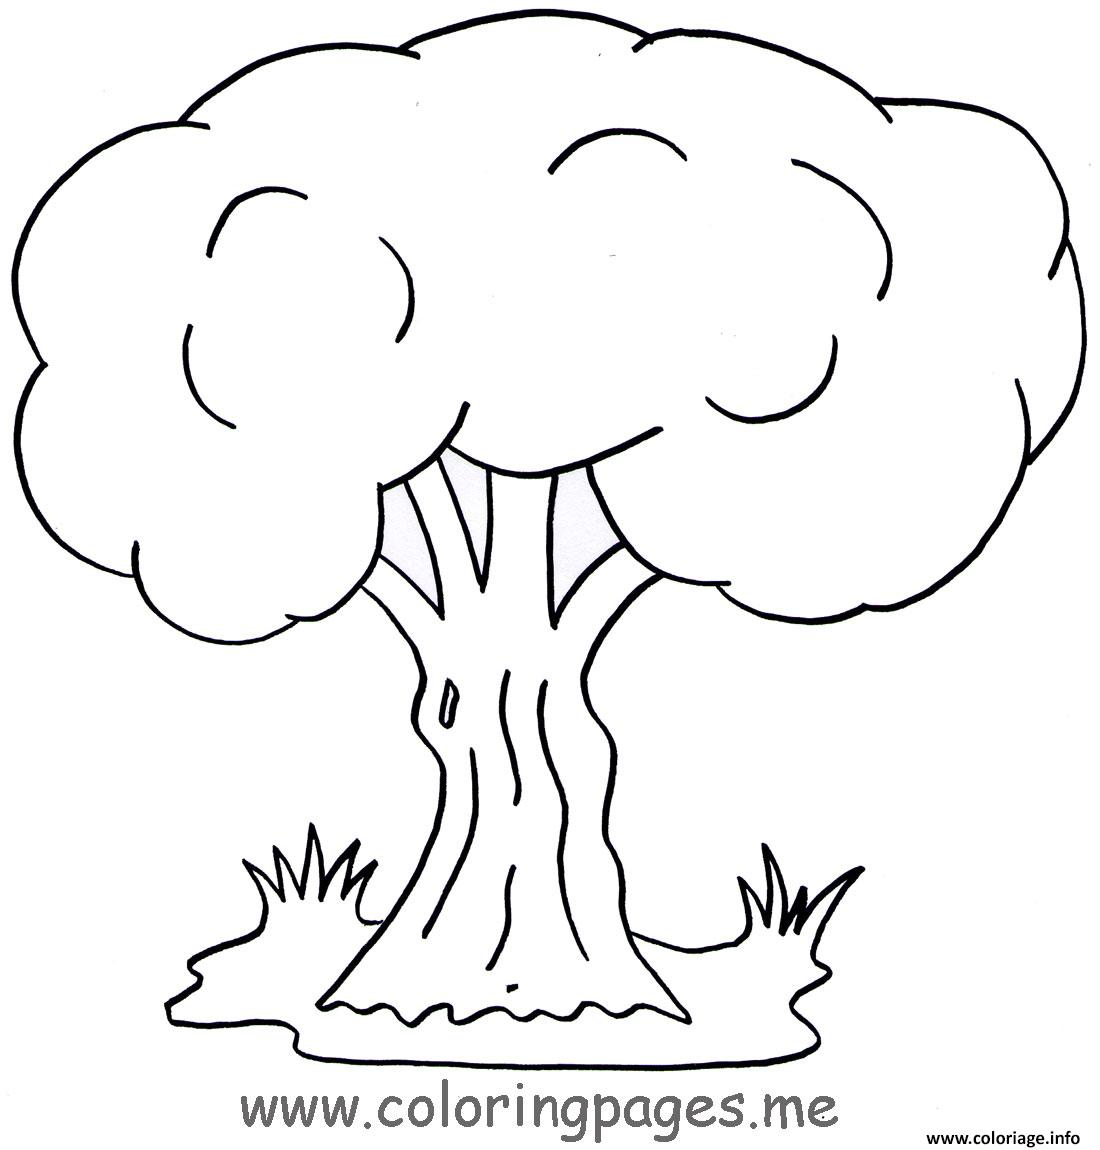 coloriage arbre 125 dessin. Black Bedroom Furniture Sets. Home Design Ideas